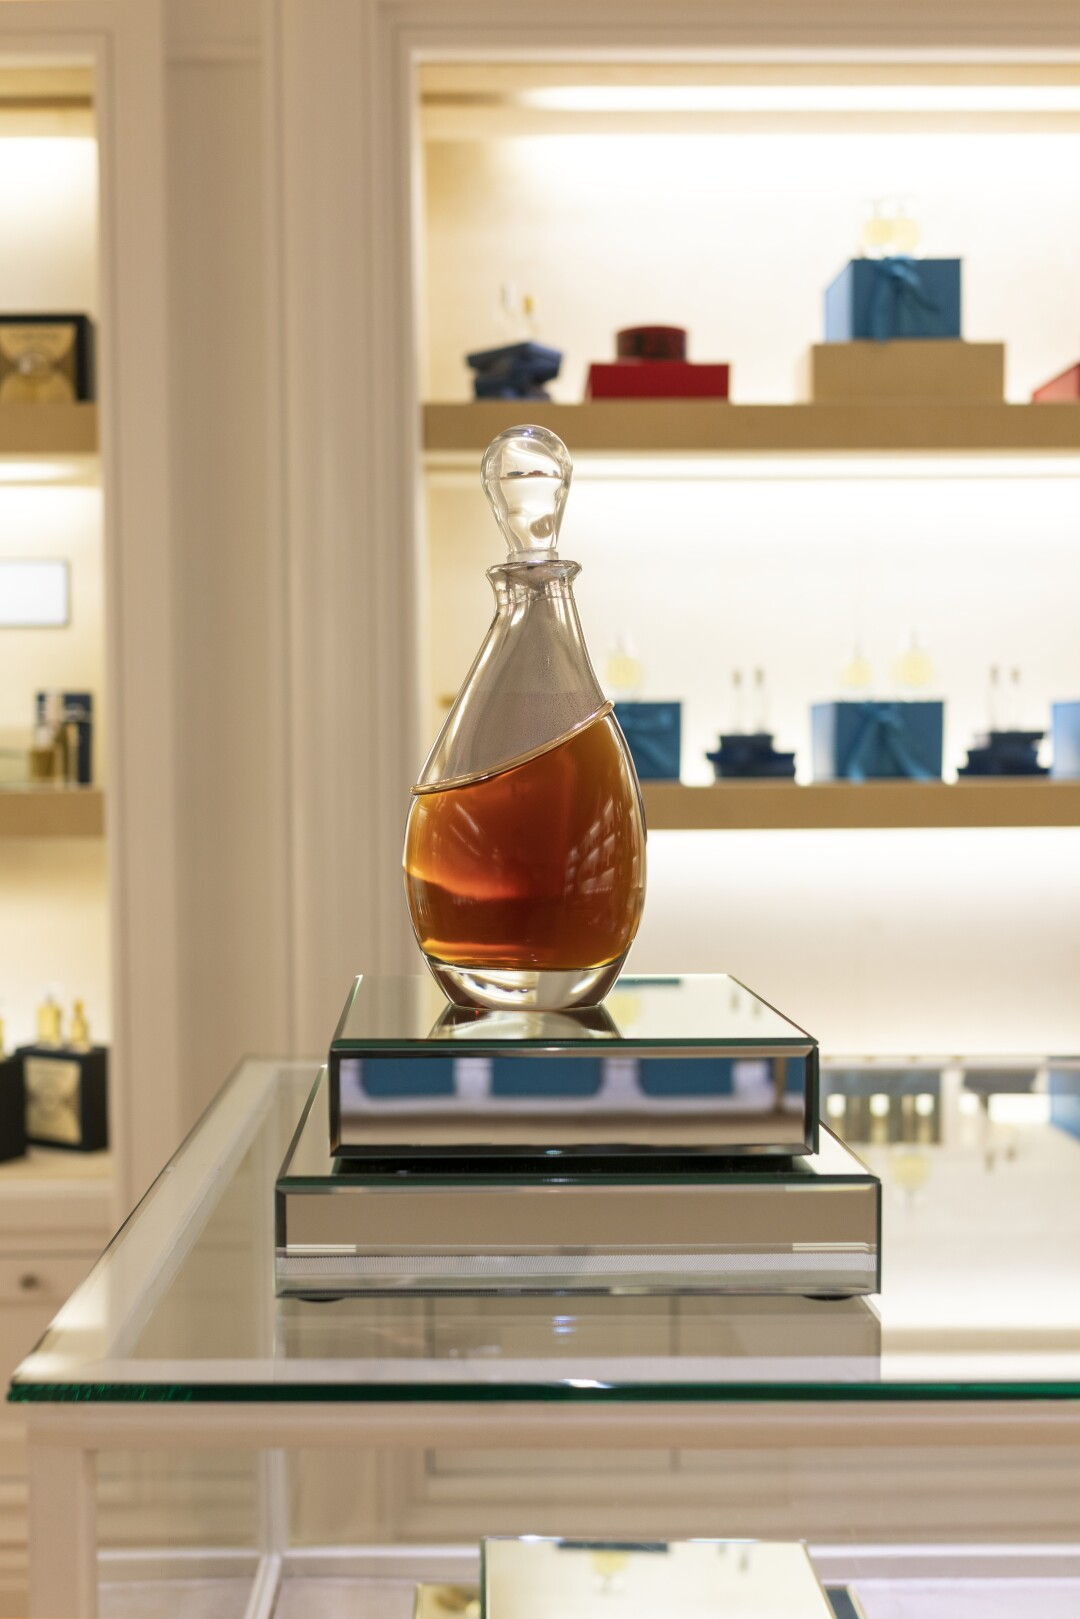 A glass perfume bottle on display in a store